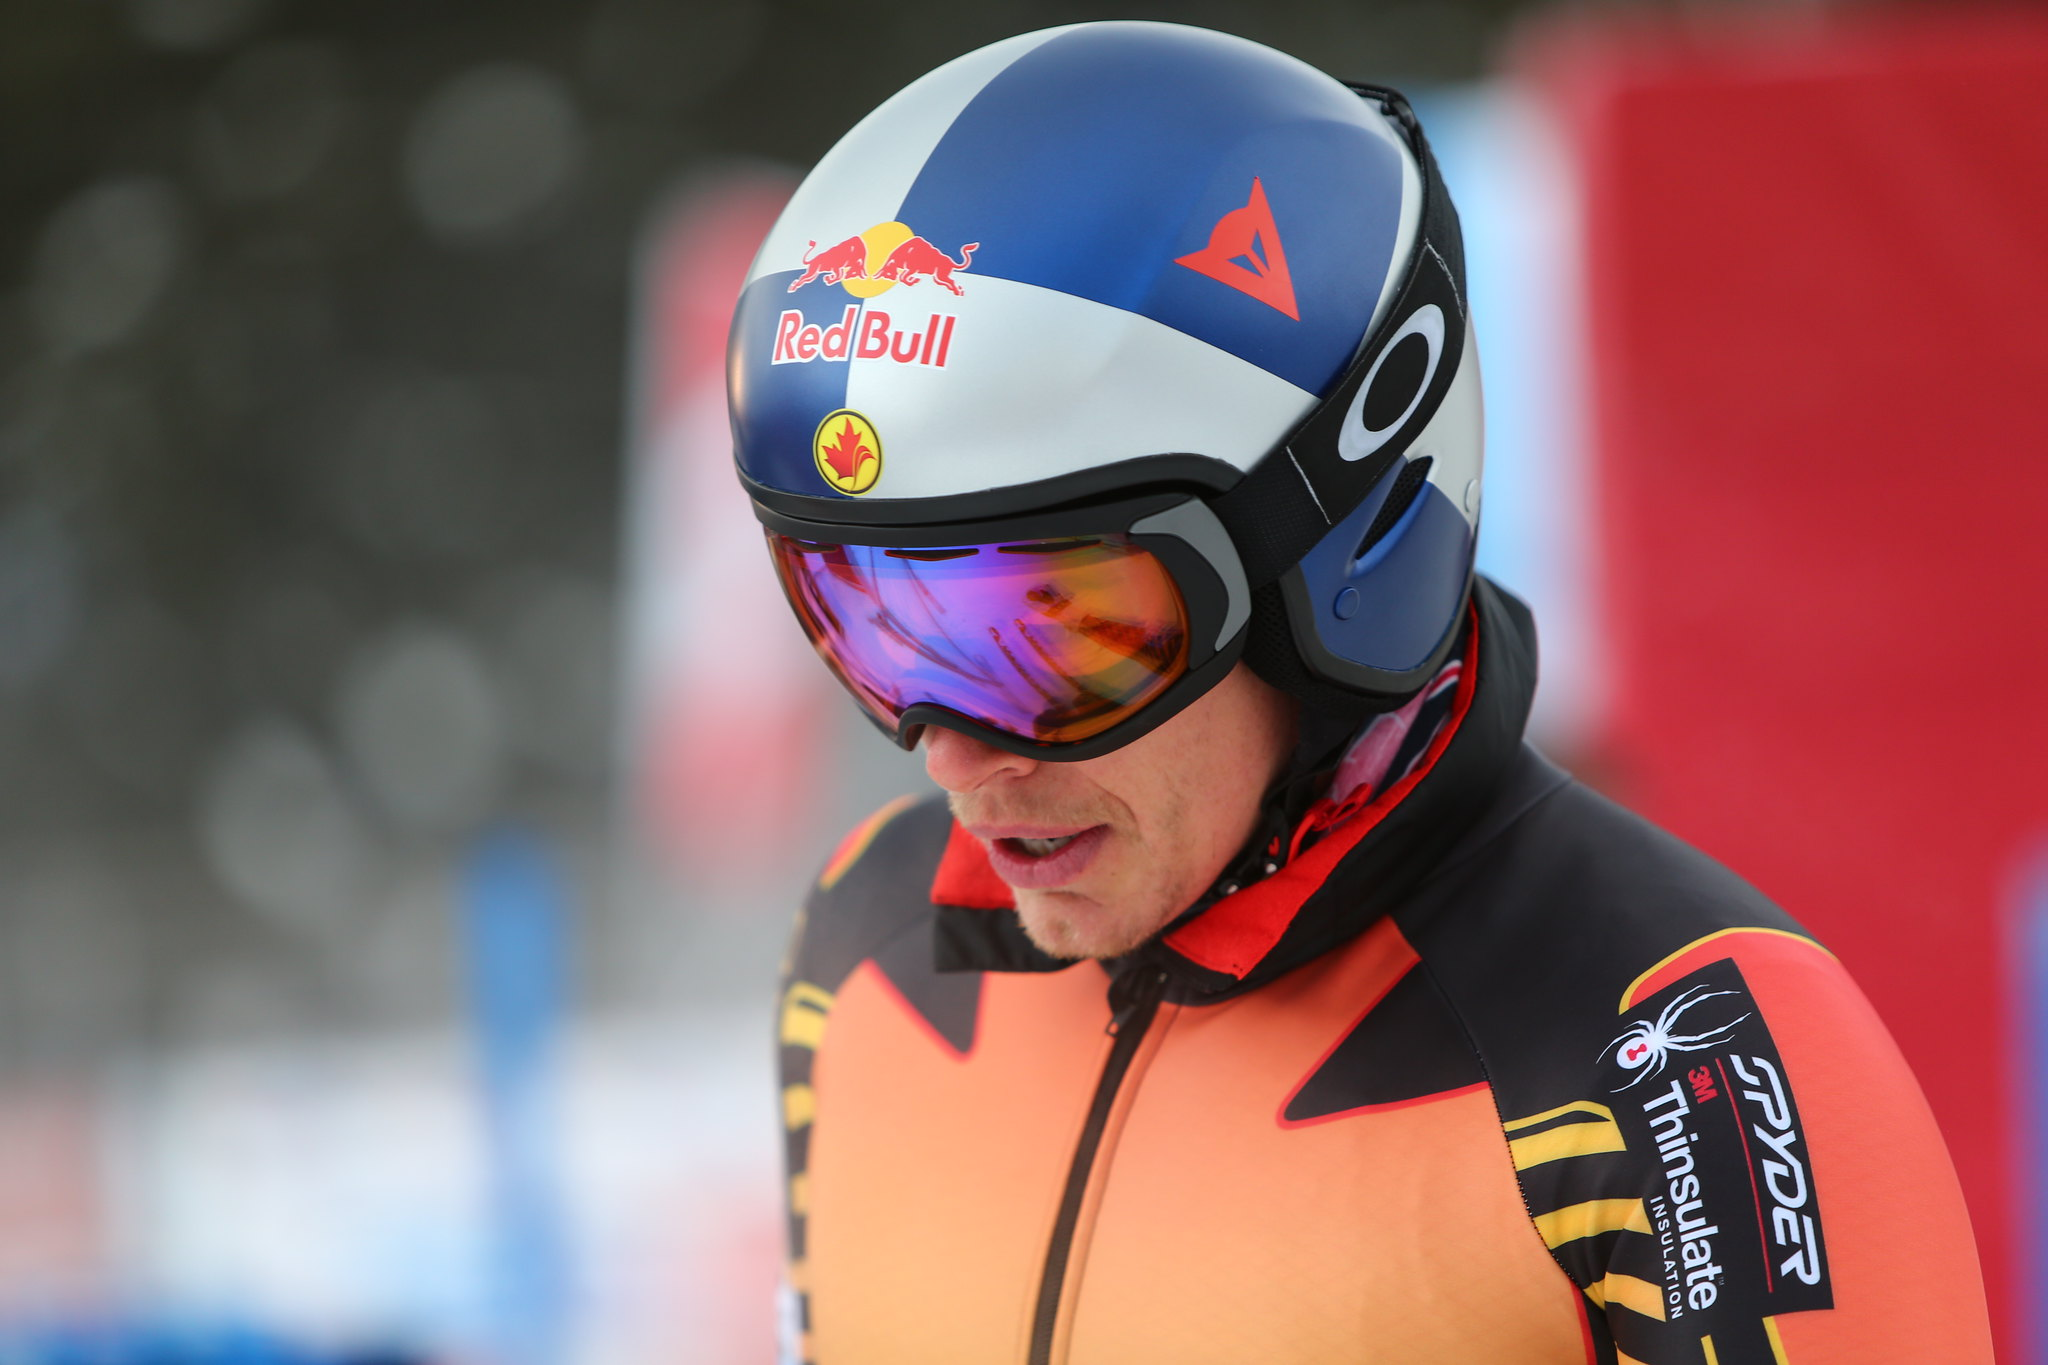 Erik Guay prepares for a free ski in Lake Louise, CAN